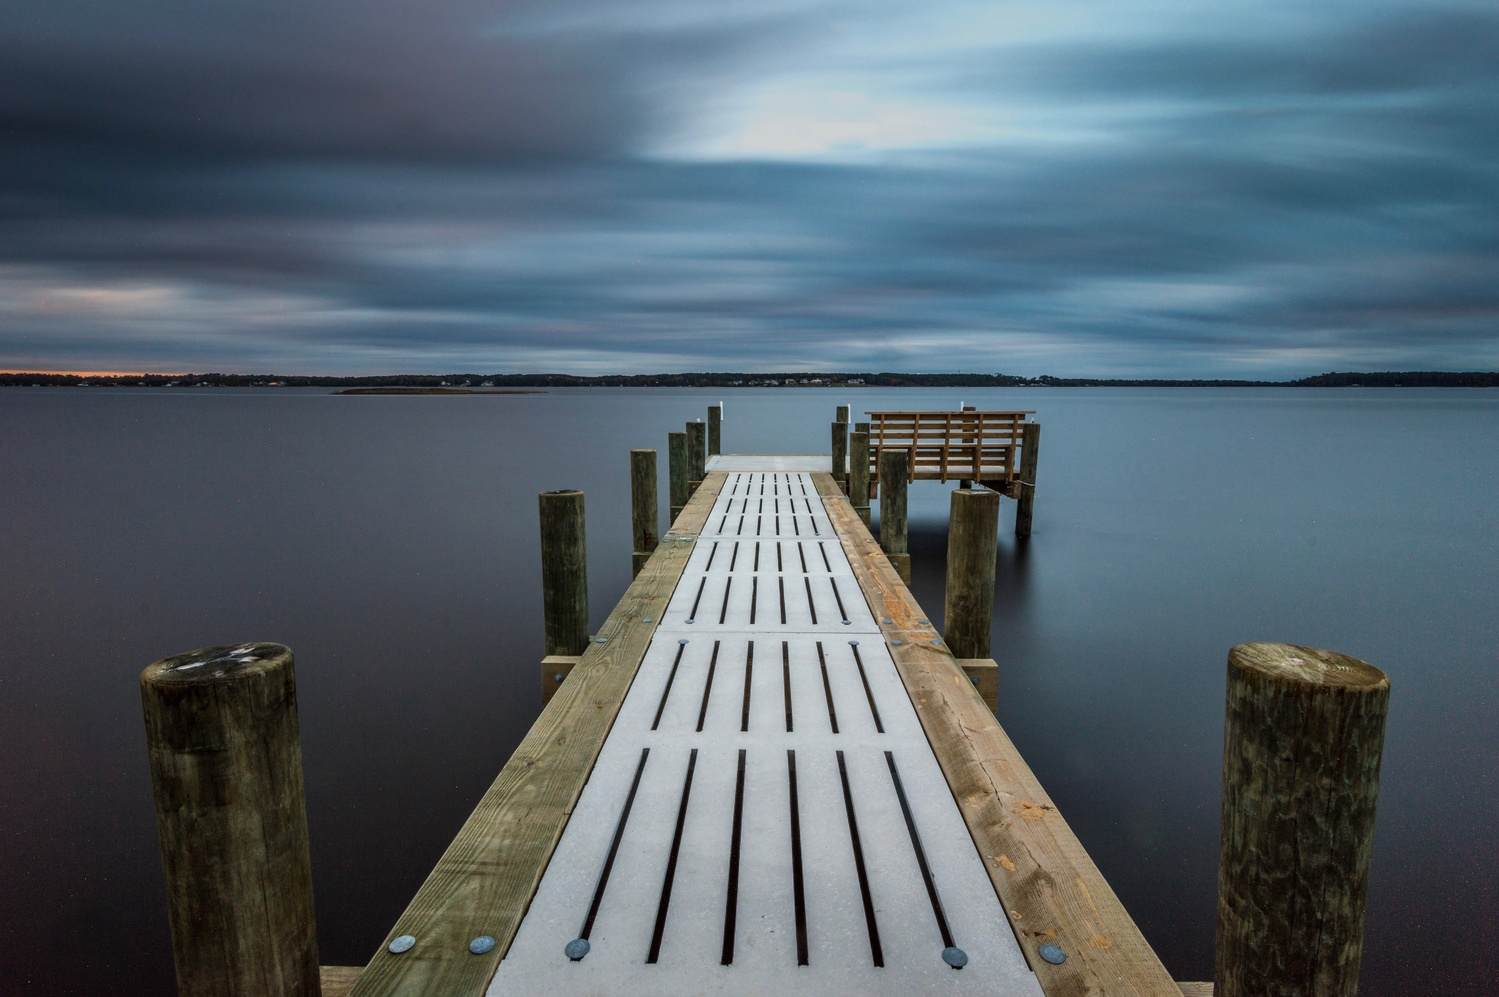 Neighborhood Dock by Kyle Foreman